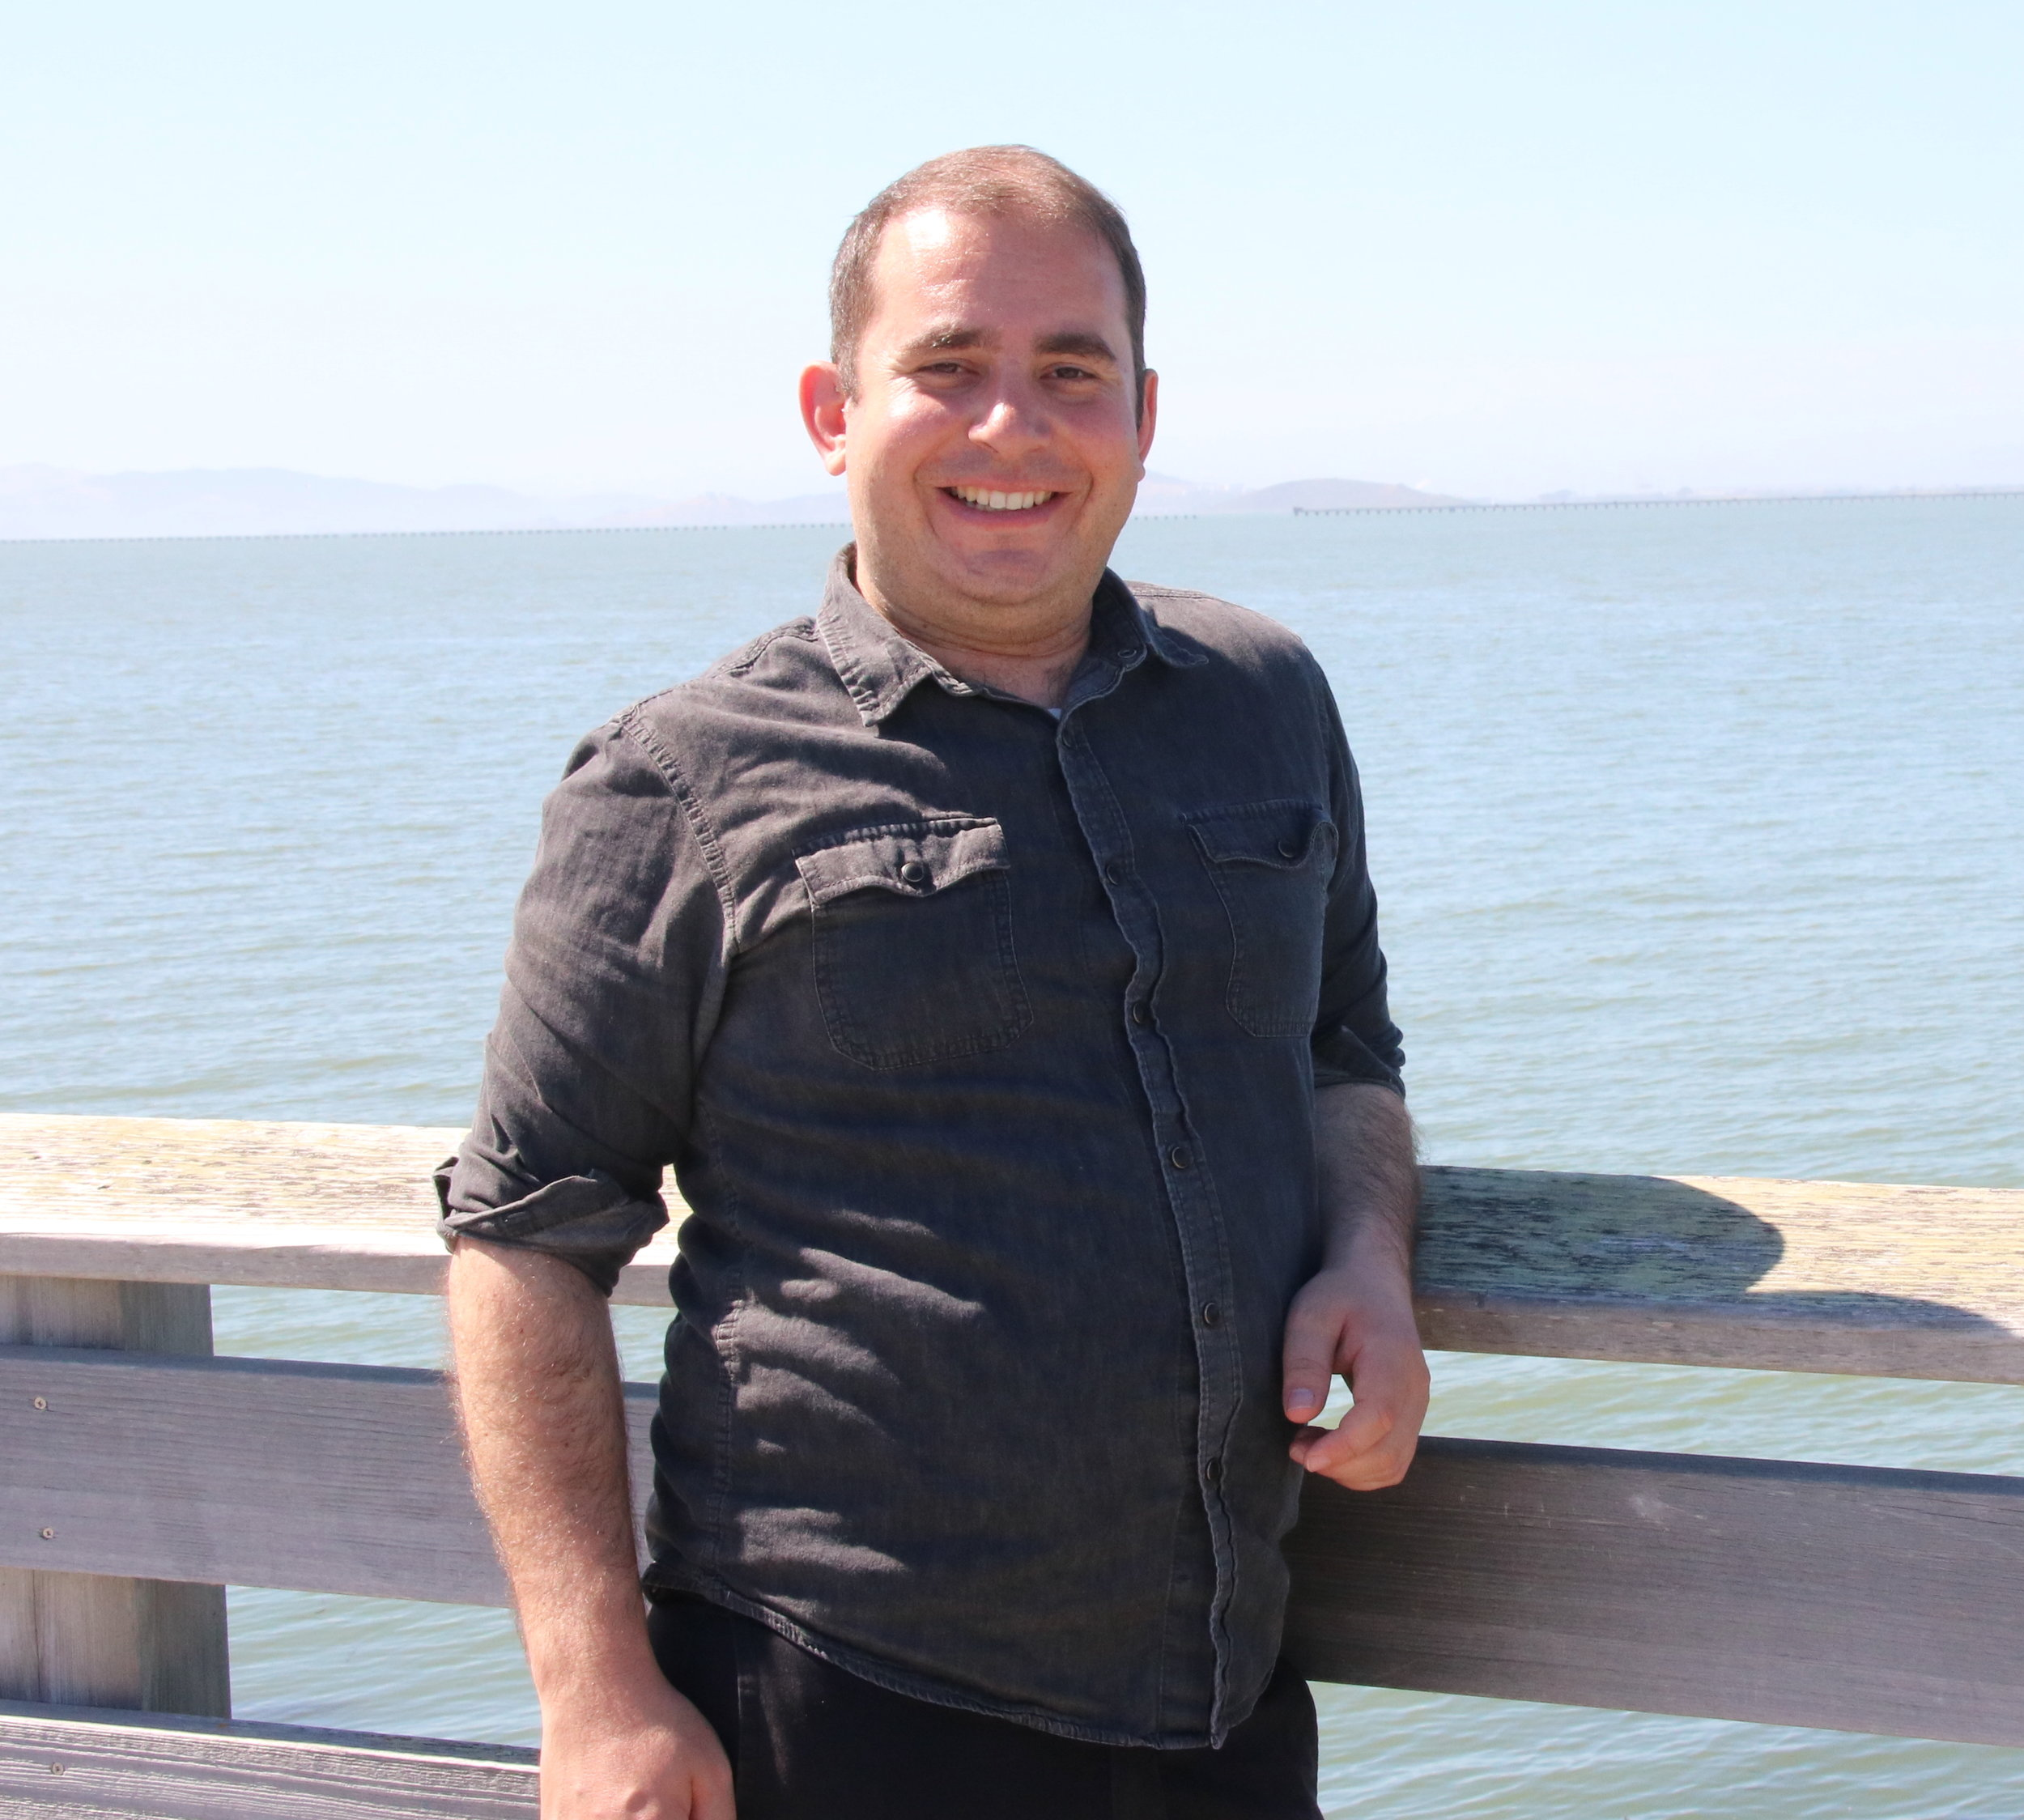 Eric Young, AMFT - San Francisco Bay Area, East Bay LGBTQ+ Couples and Sex Therapist